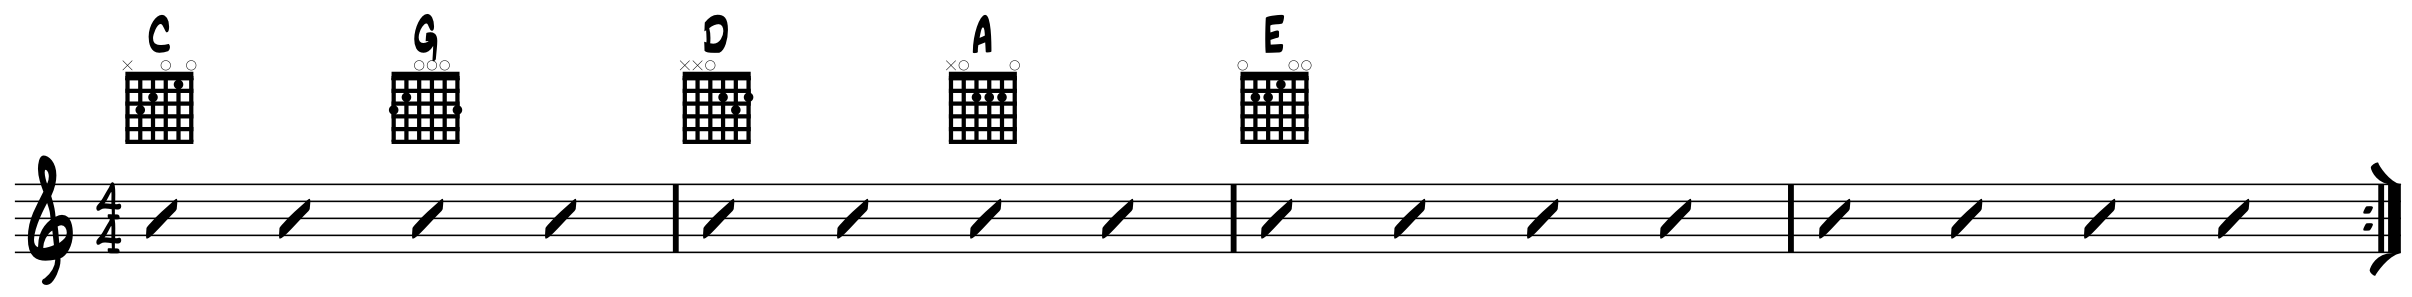 Hey Delilah Chords Choice Image Chord Guitar Finger Position